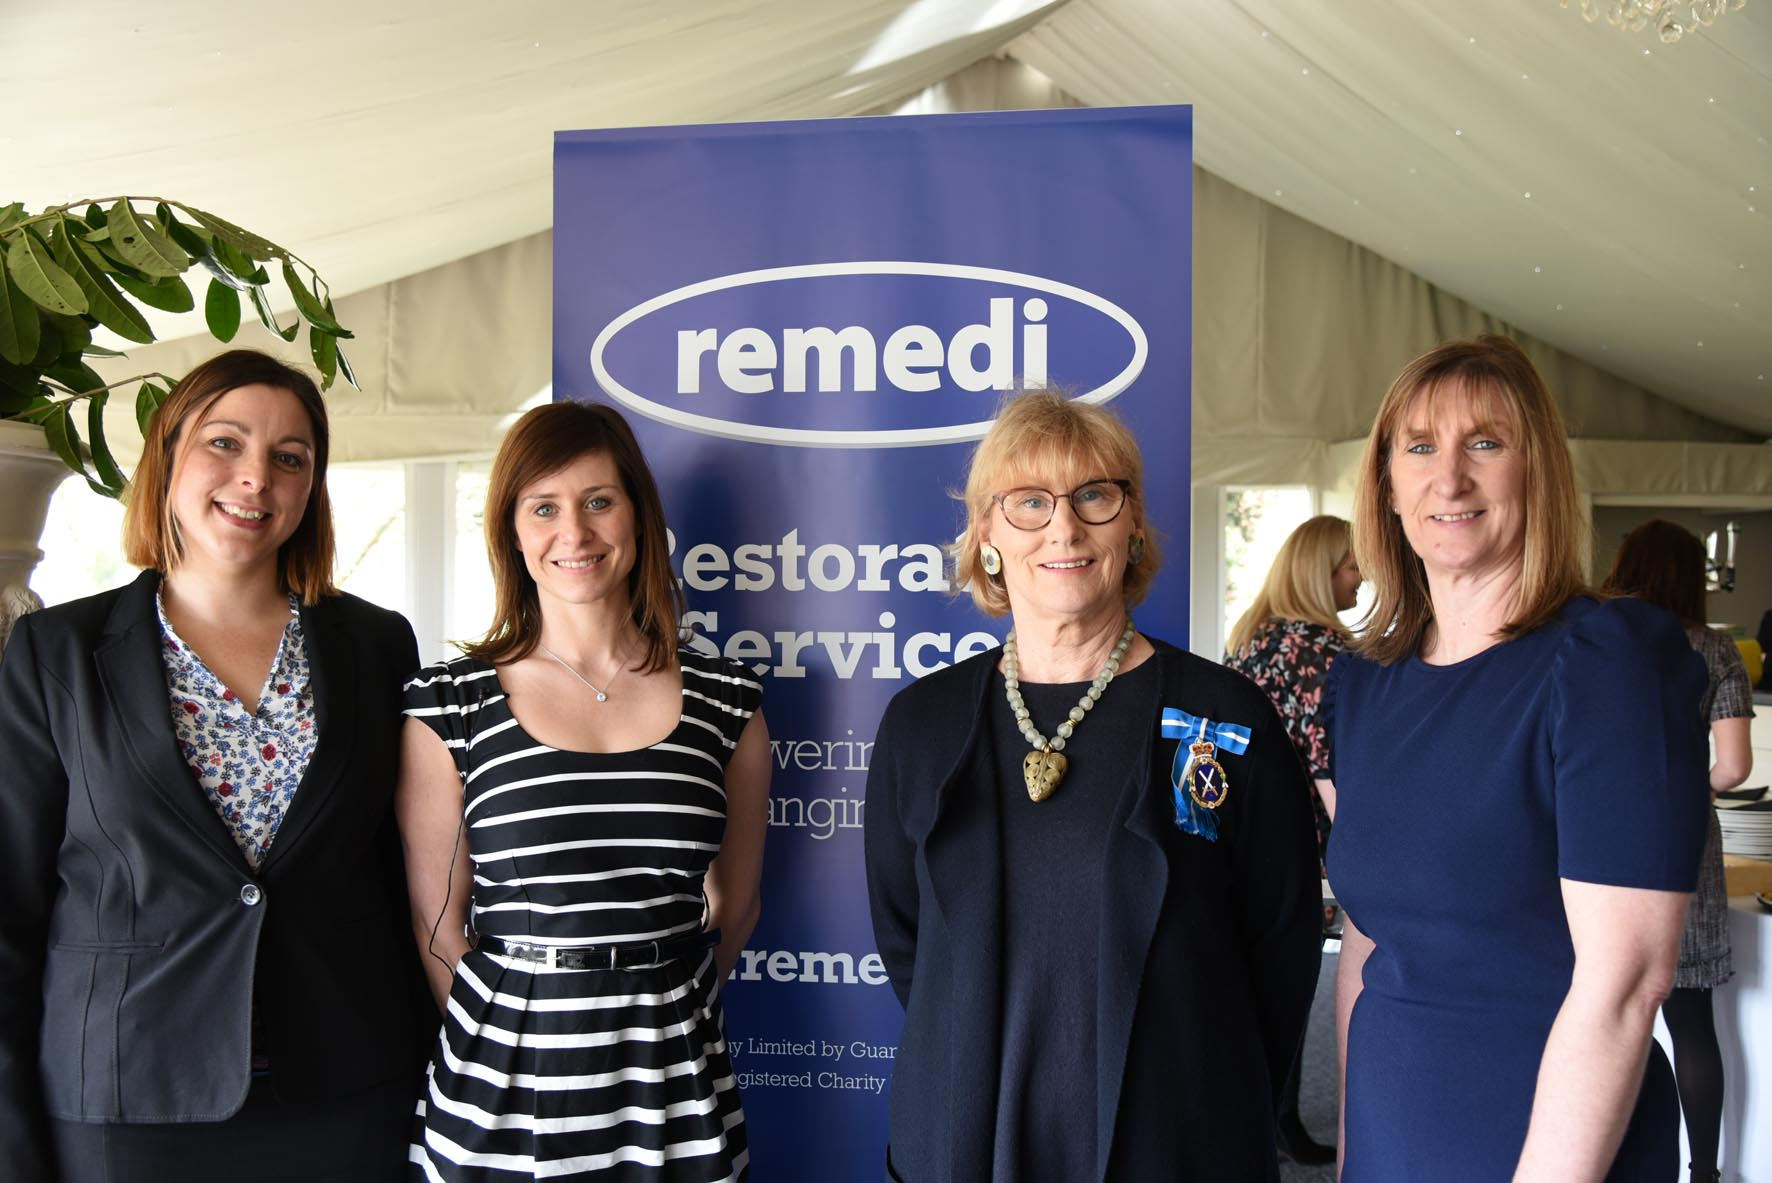 From left, Rainbow Langdale-Smith, from the office of the PCC, Nicola Bancroft, from Remedi, High Sheriff of Cheshire Sarah Callander Beckett and Lisa Gill, from Remedi